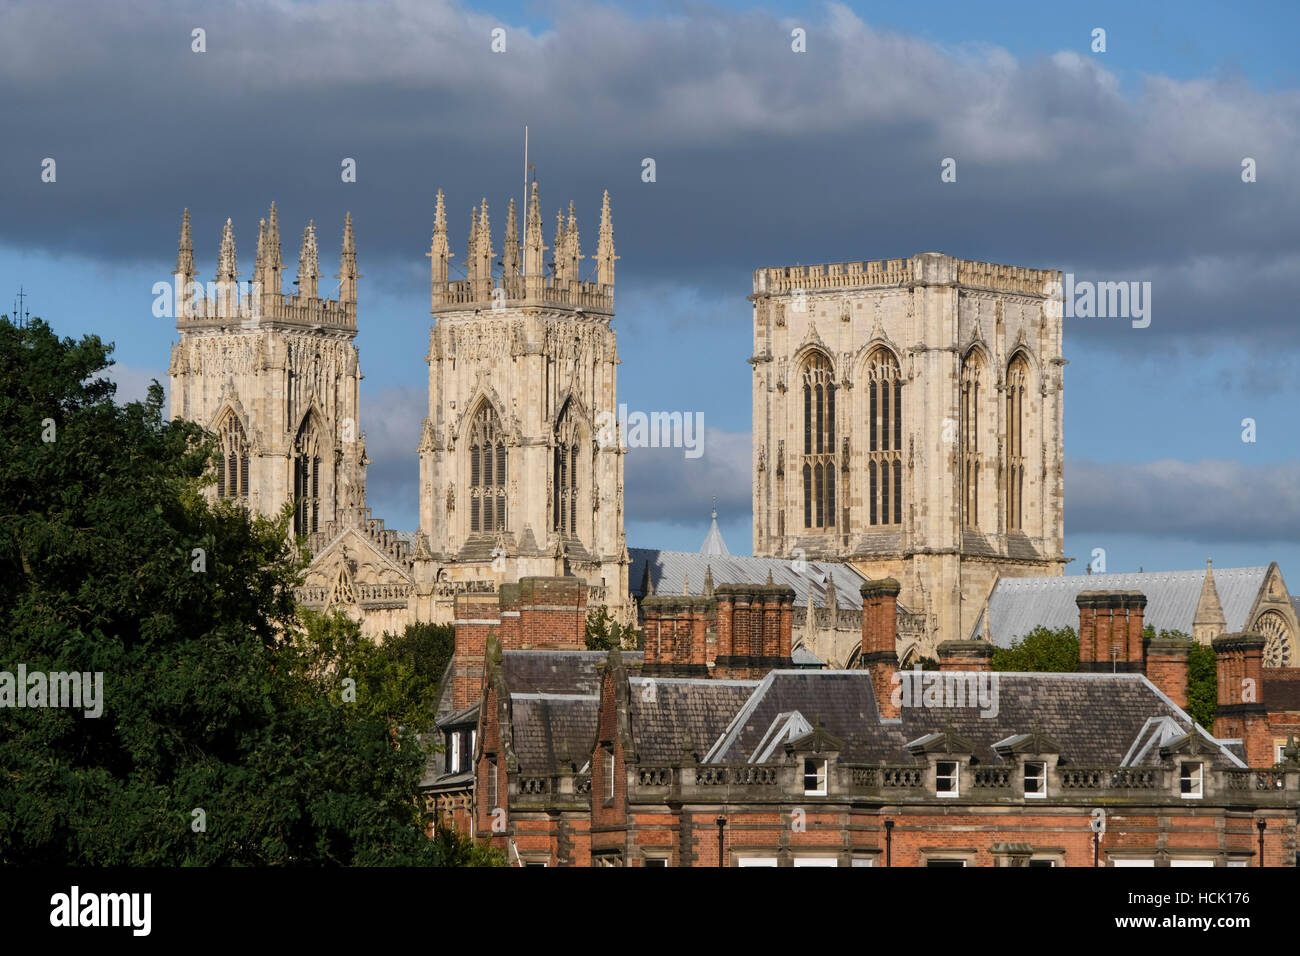 York Minster: view of towers and rooftops. - Stock Image